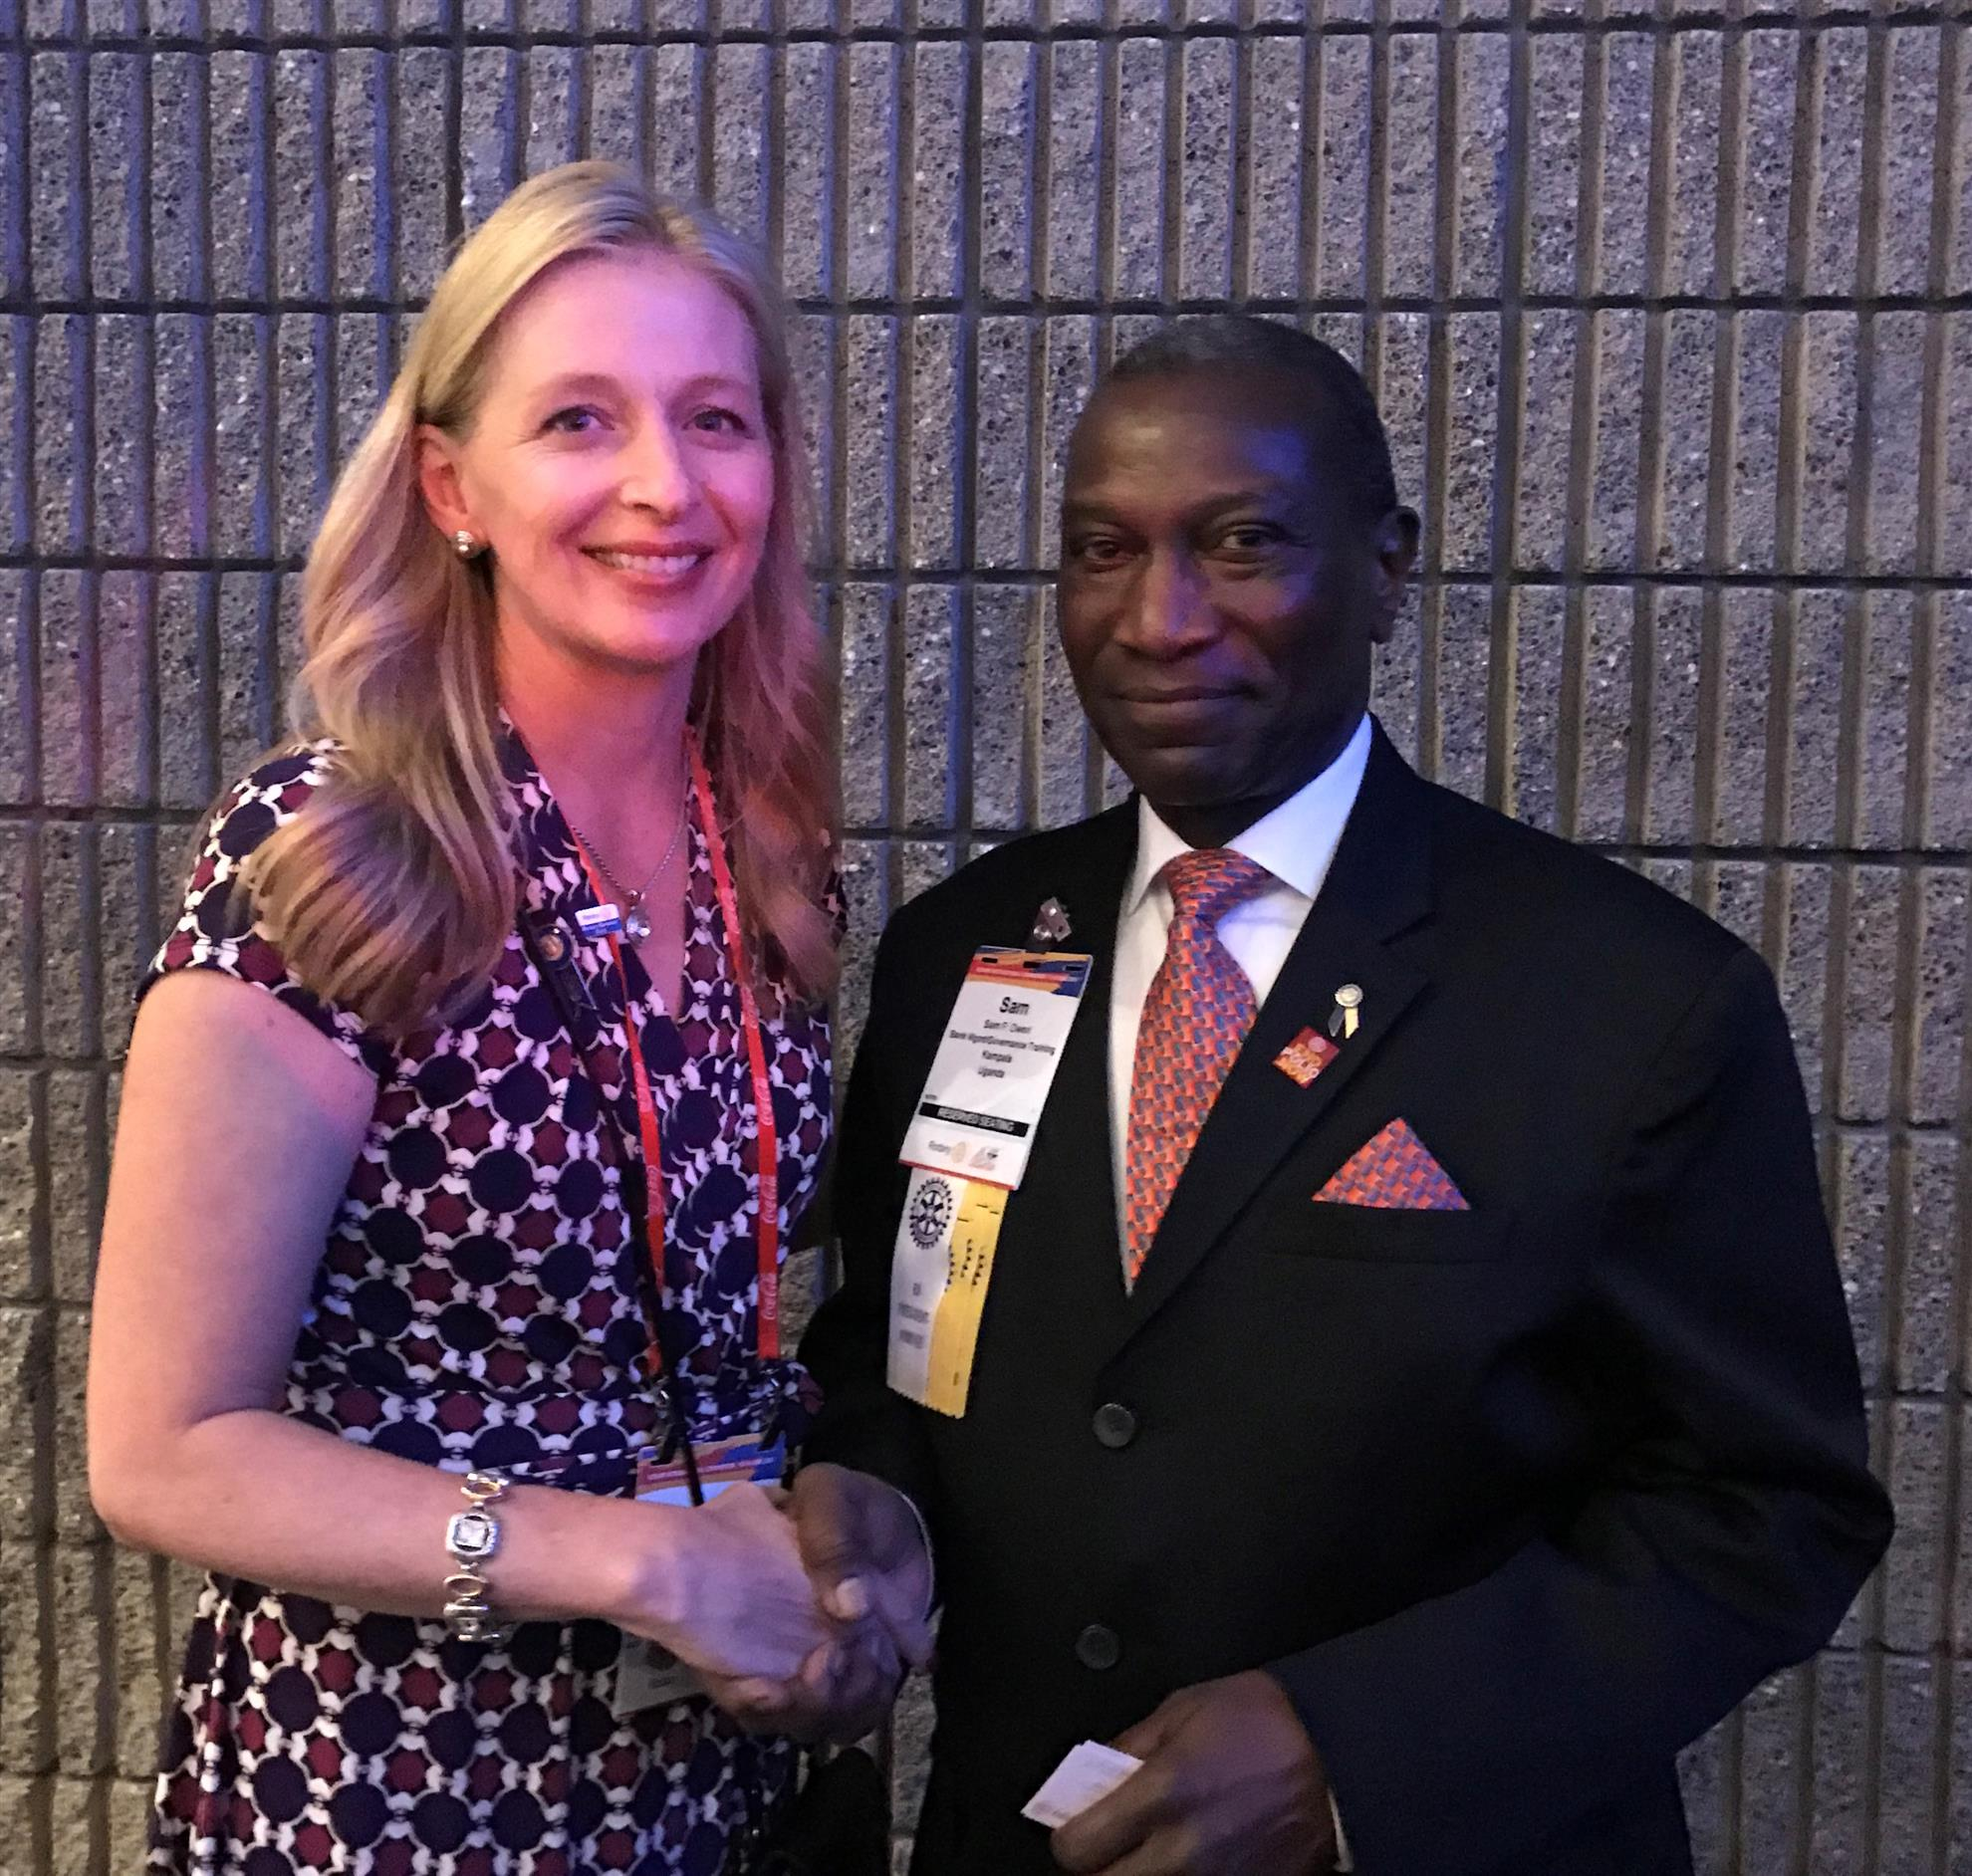 District Governor-Elect Jennifer Deroin and Sam Owori at the 2017 RI Convention in Atlanta